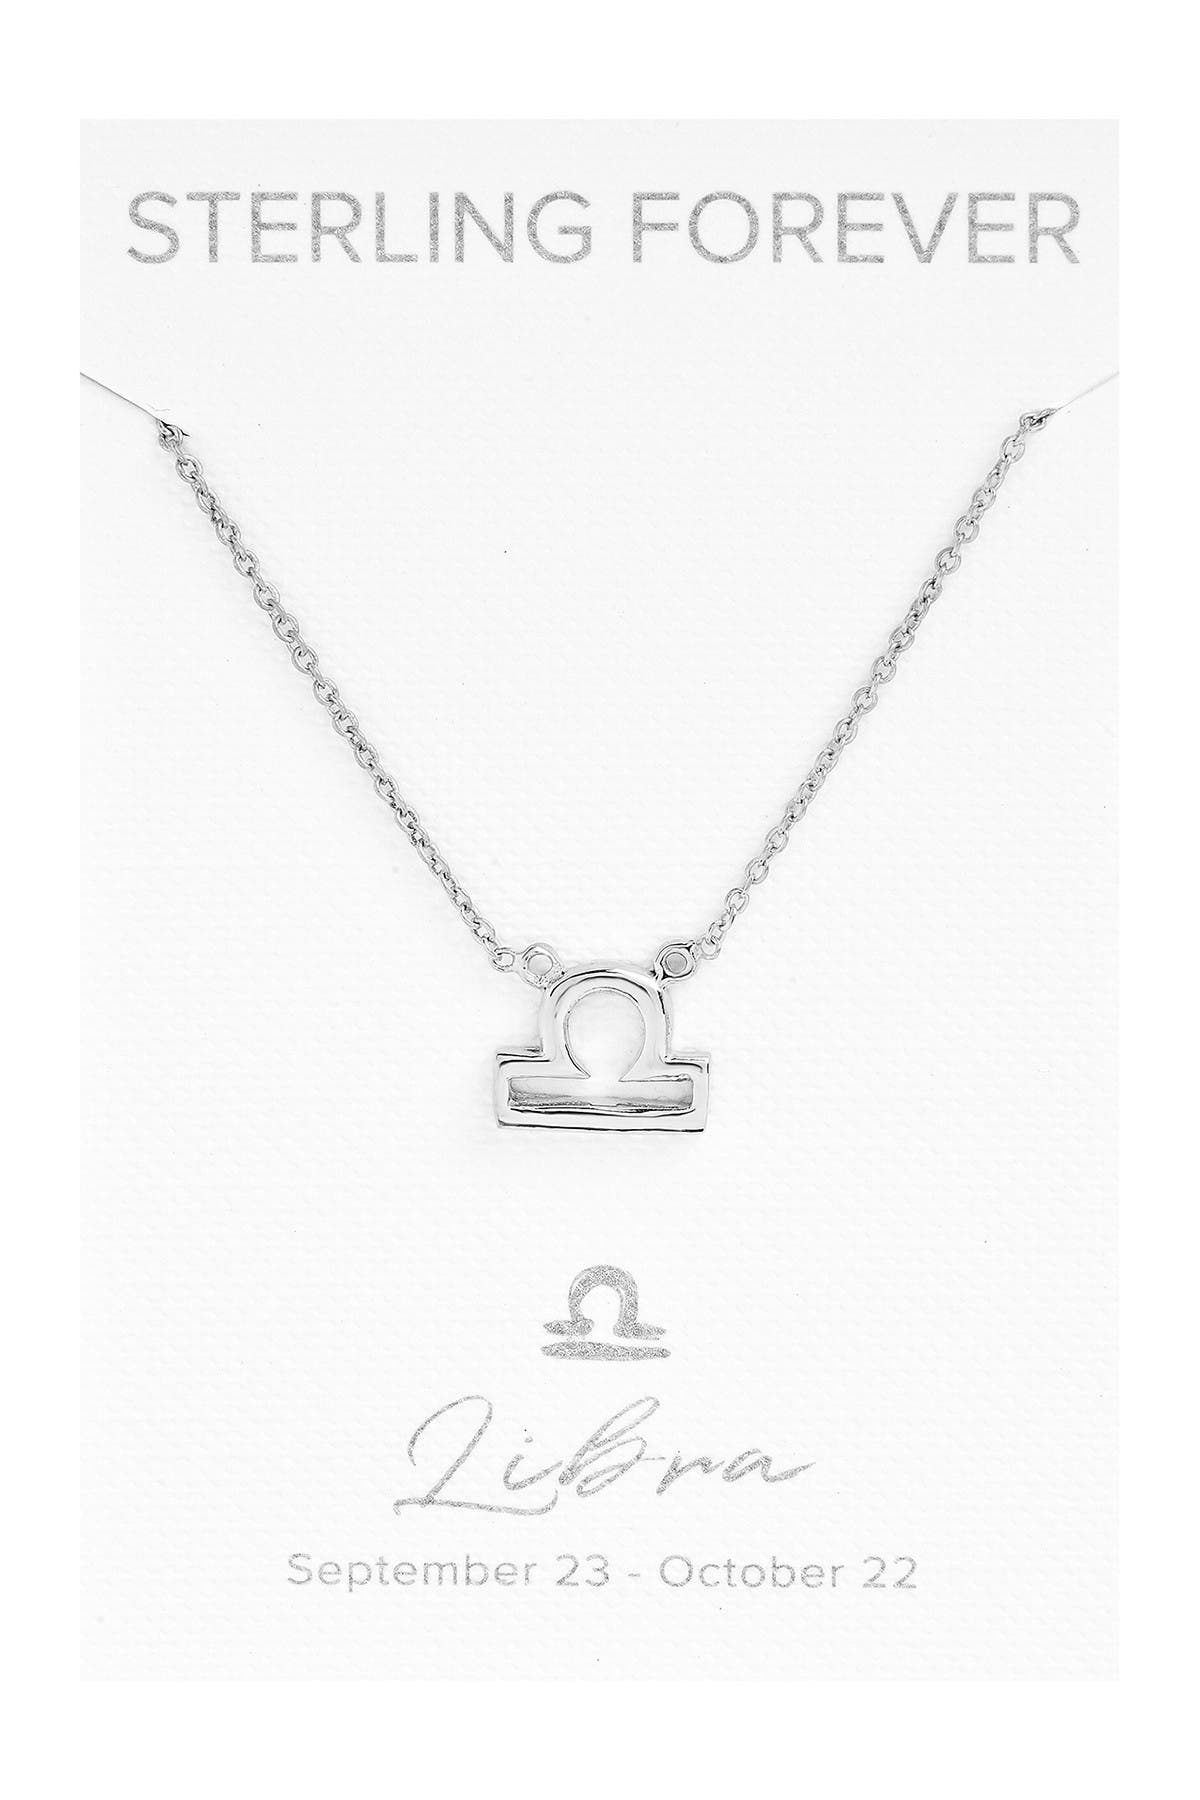 Image of Sterling Forever Rhodium Plated Zodiac Pendant Necklace - Libra